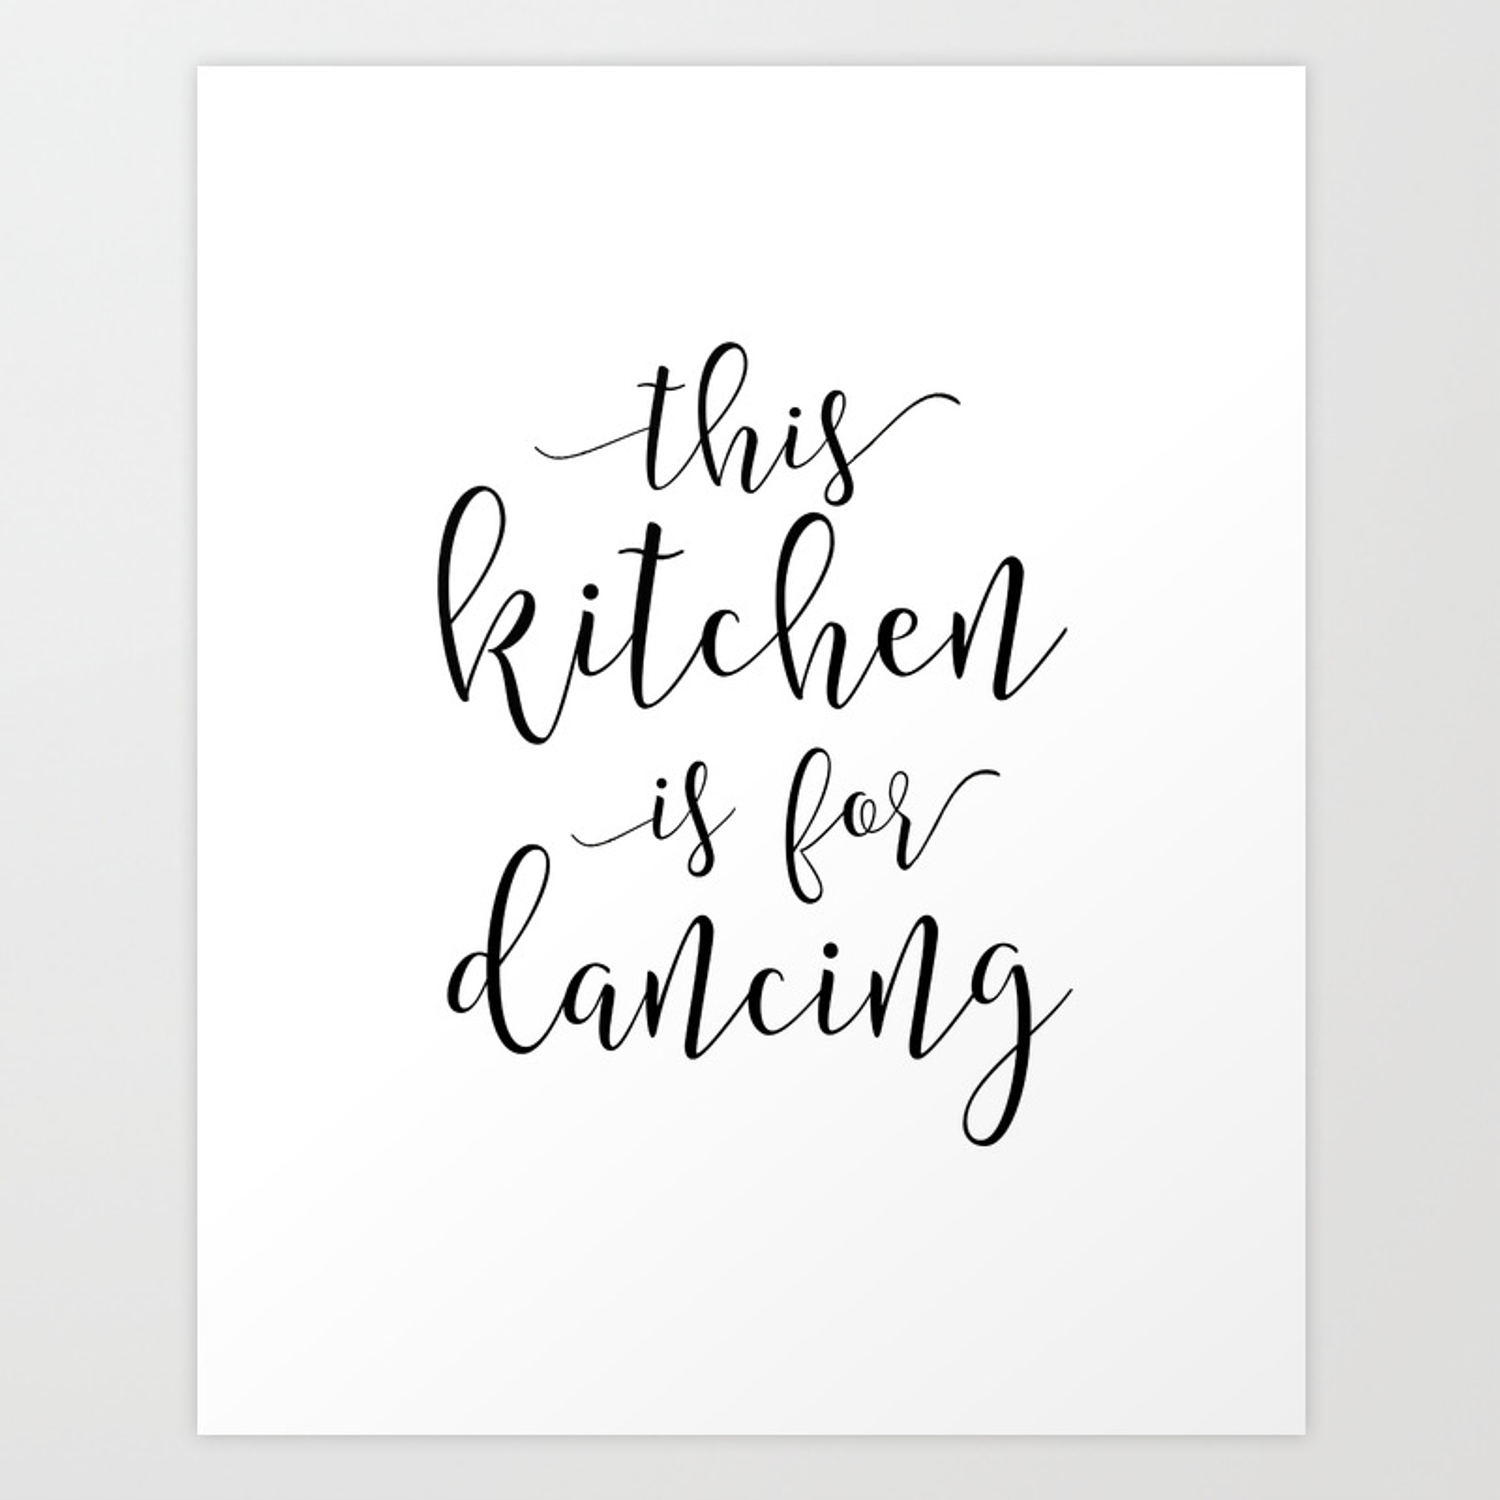 Printable Art This Kitchen Is For Dancing Funny Print Gift For Husband Kitchen Signs Kitchen Deco Art Print By Alextypography Society6